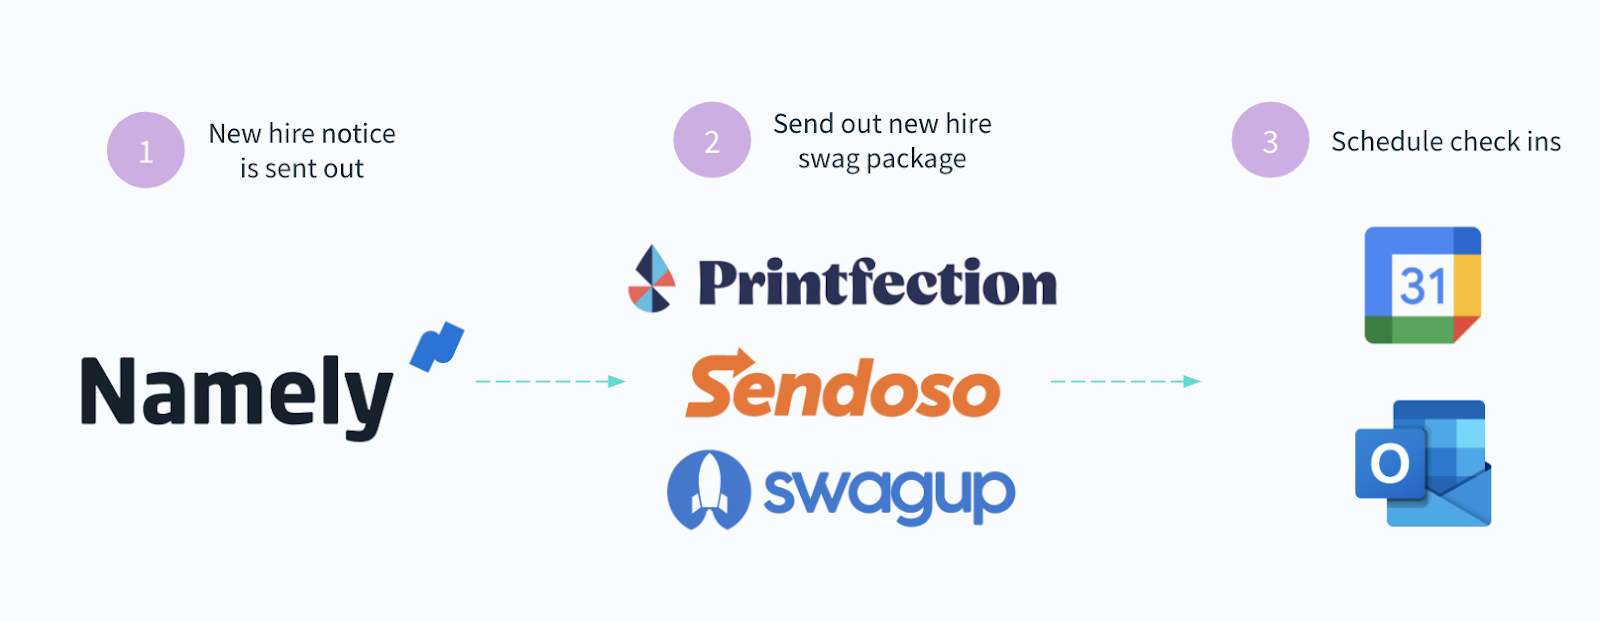 An onboarding automation that streamlines the process of sending new hires swag and scheduling meetings.